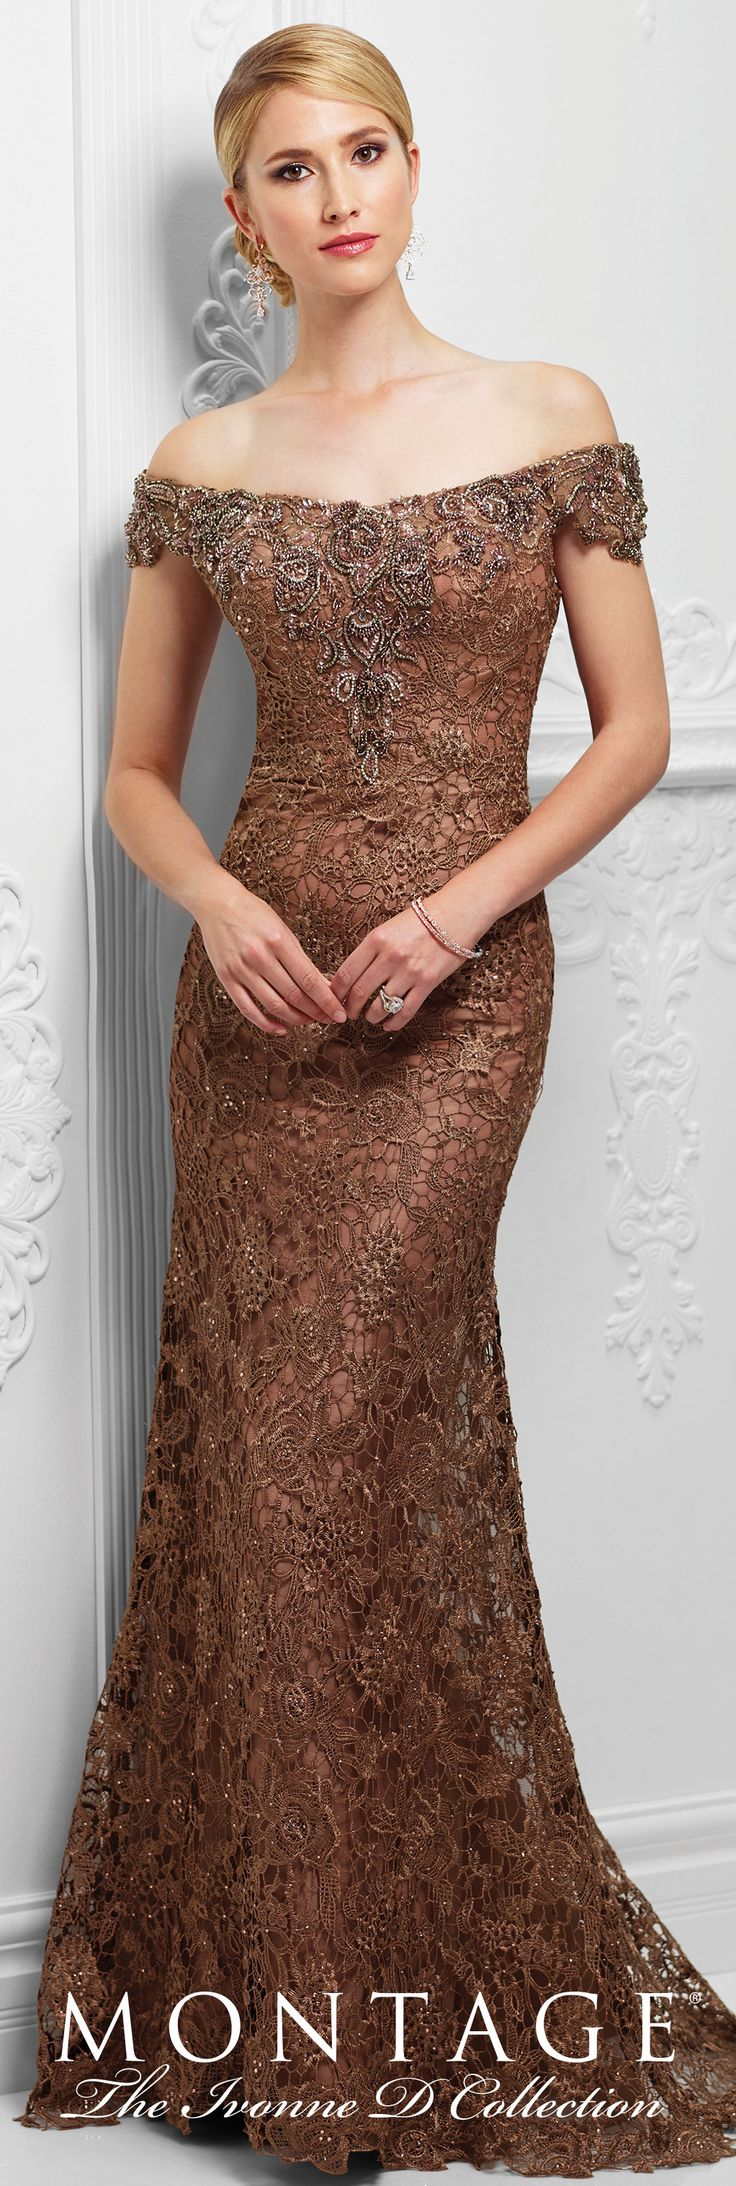 Formal Evening Gowns by Mon Cheri - Spring 2017 - Style No. 117D71 - bronze tulle and embroidered lace evening dress